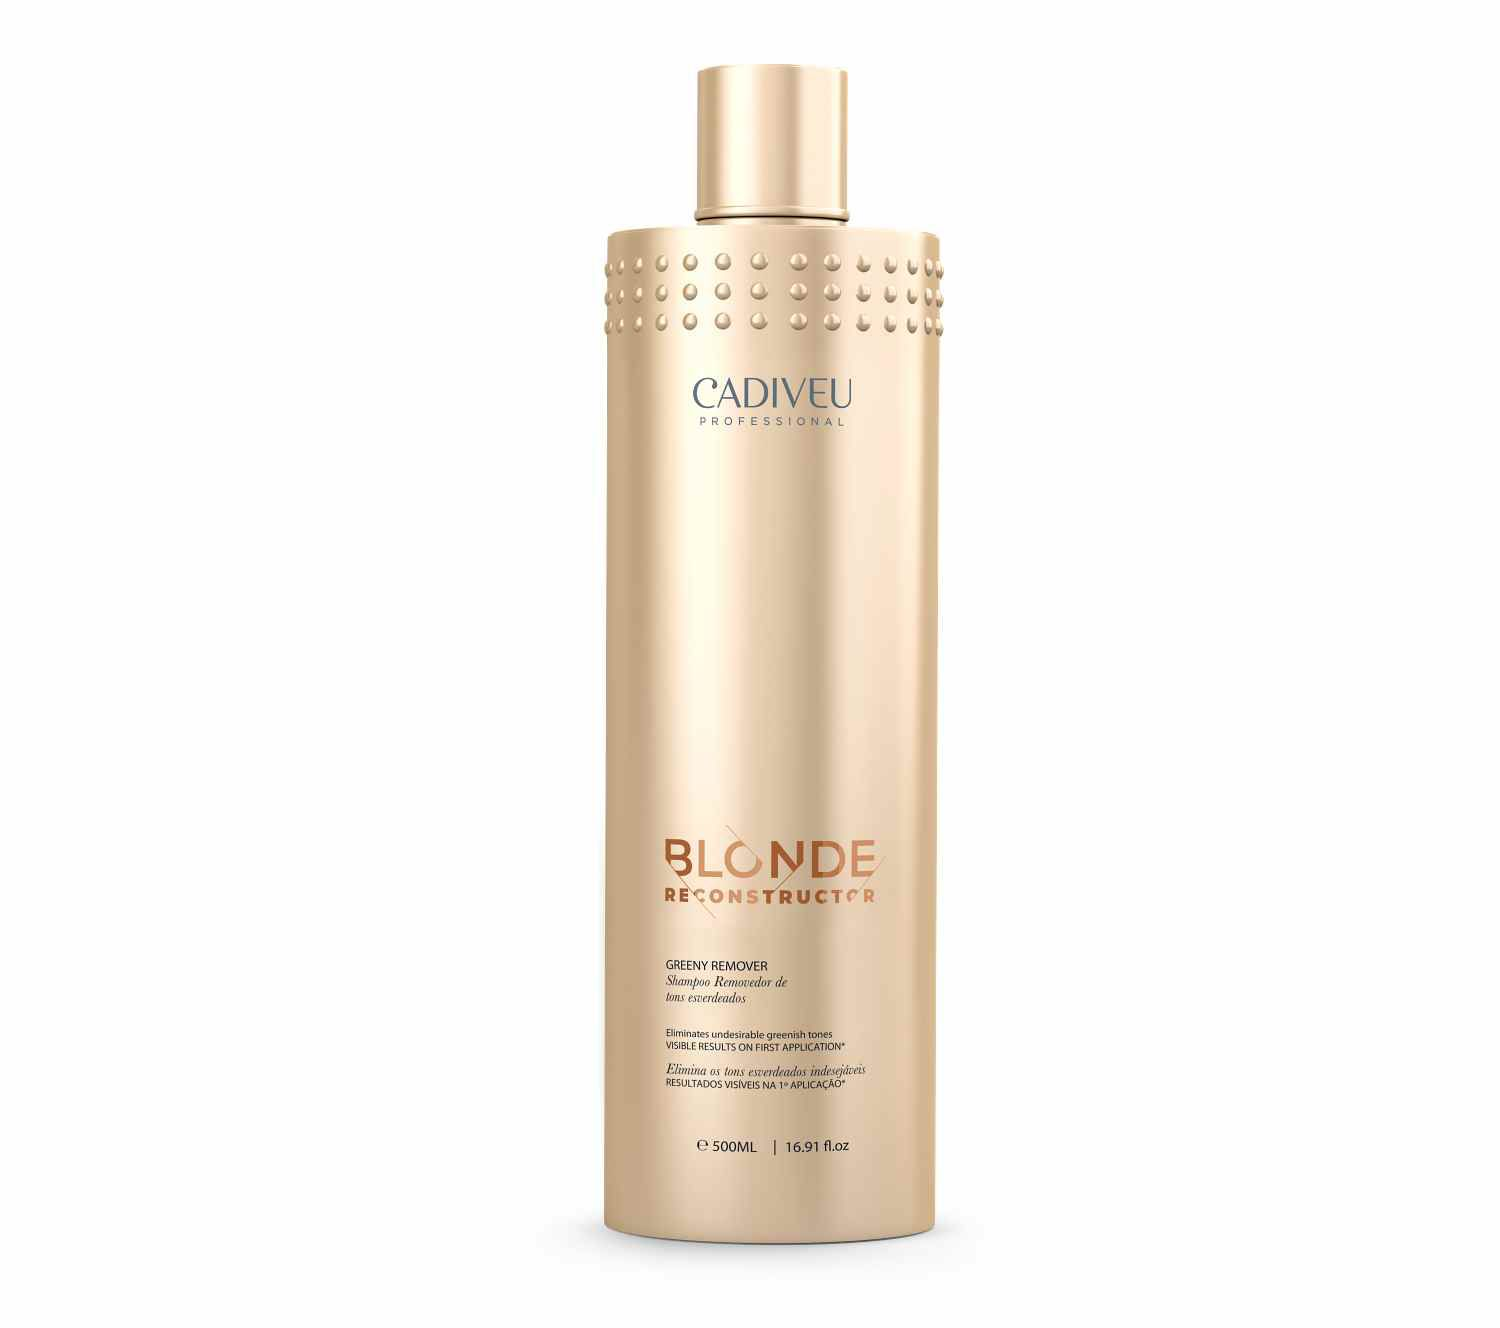 Greeny Remover 500ml Blonde Reconstructor - Cadiveu Professional